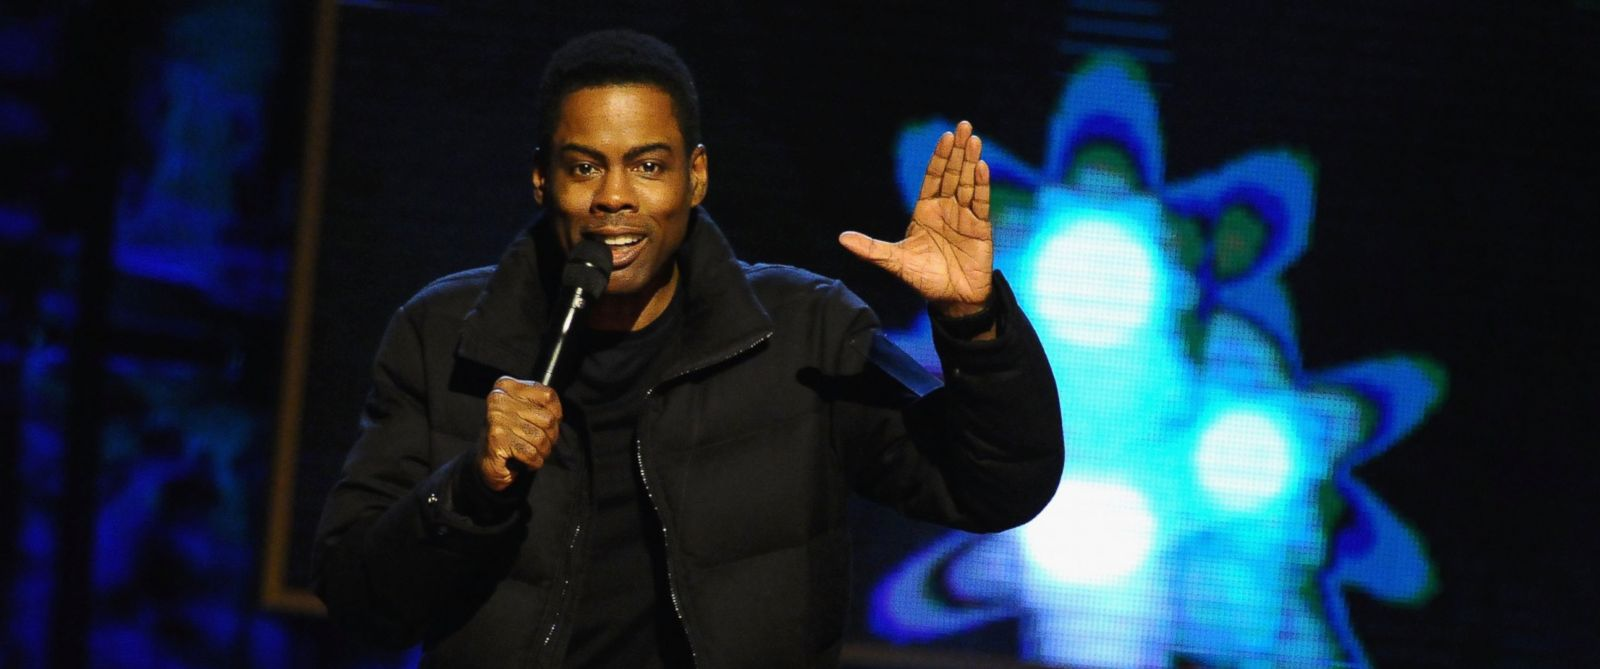 PHOTO: Chris Rock performs on stage at Comedy Centrals Night of Too Many Stars: America Comes Together For Autism Programs on Feb. 28, 2015 in New York City.